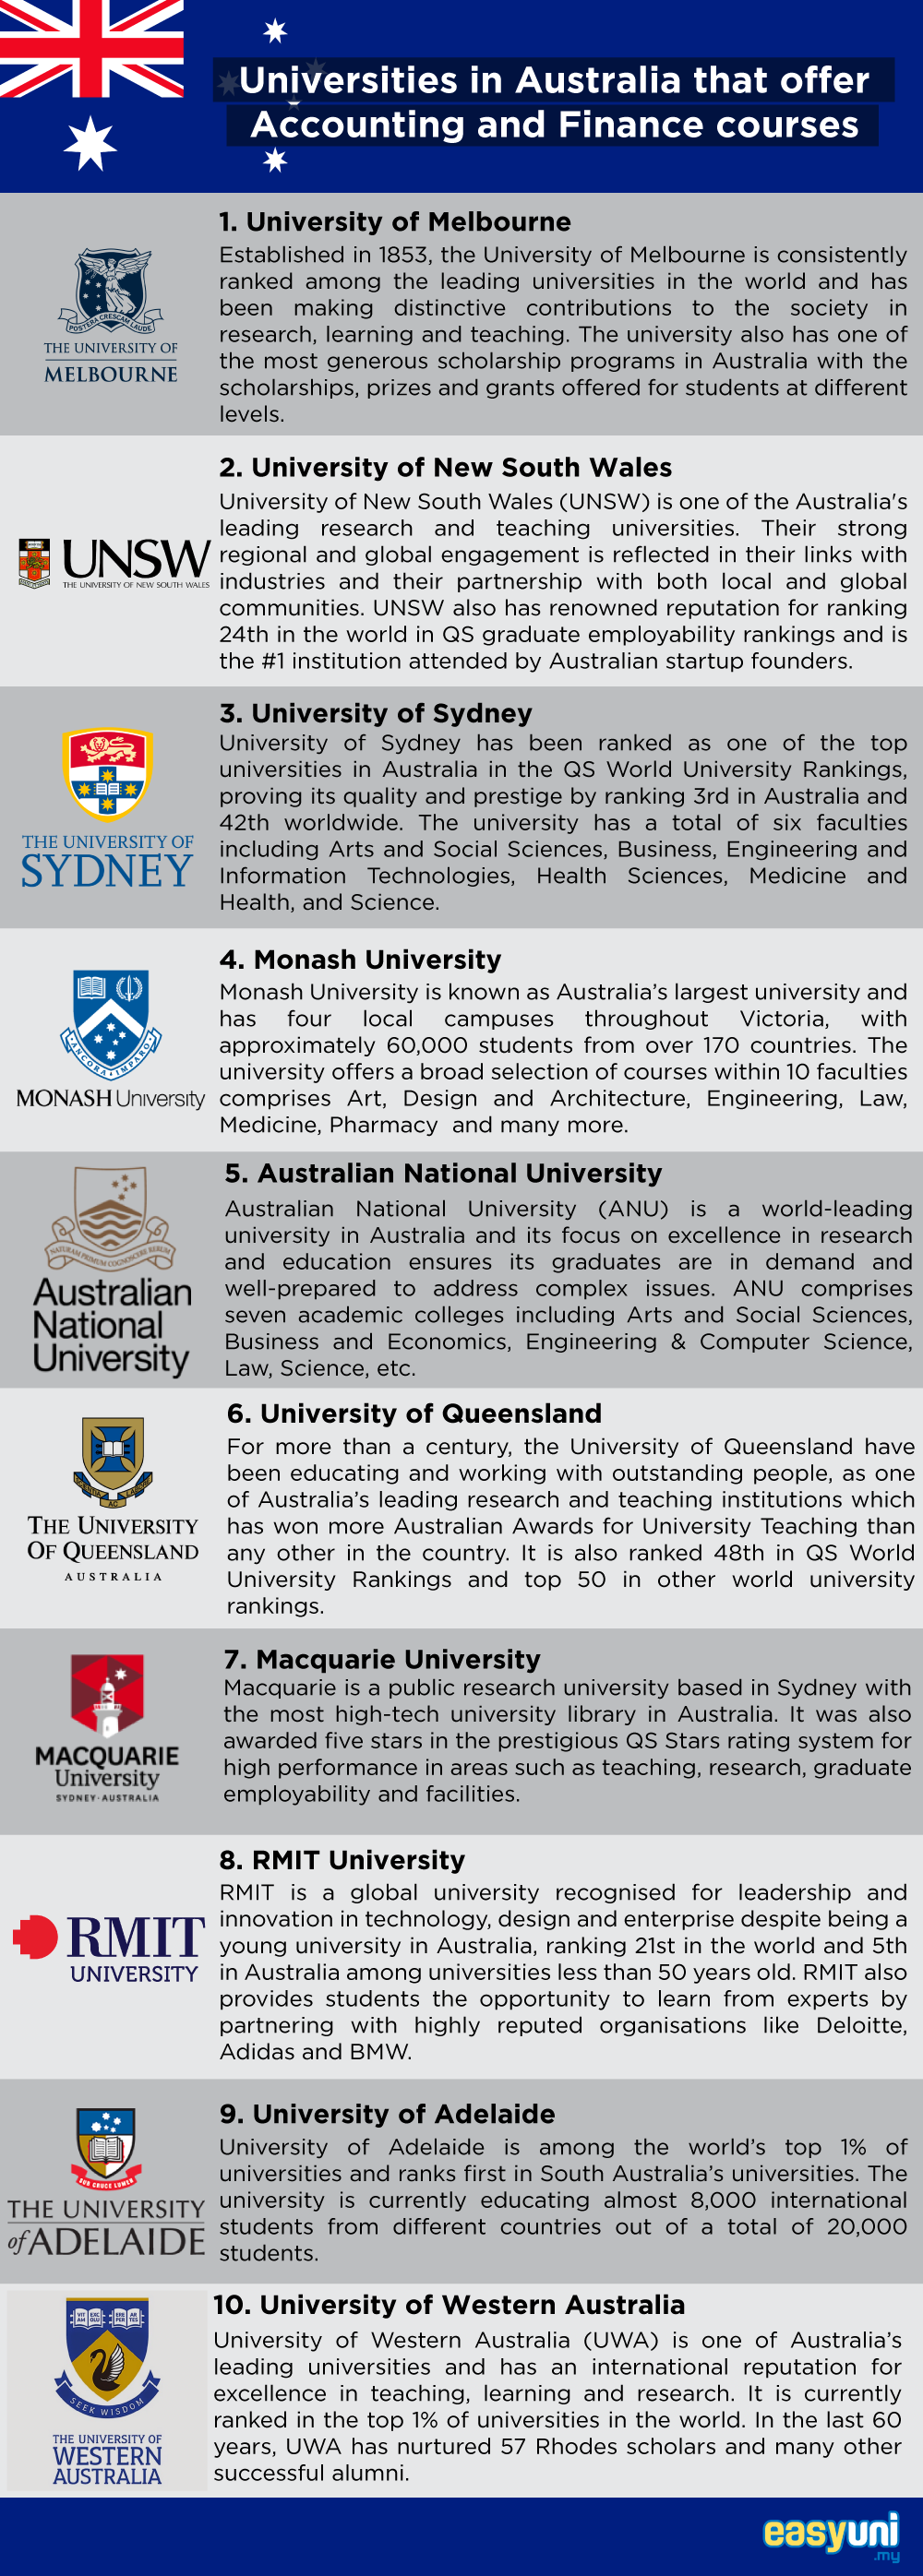 Universities in Australia that offer Accounting and Finance.